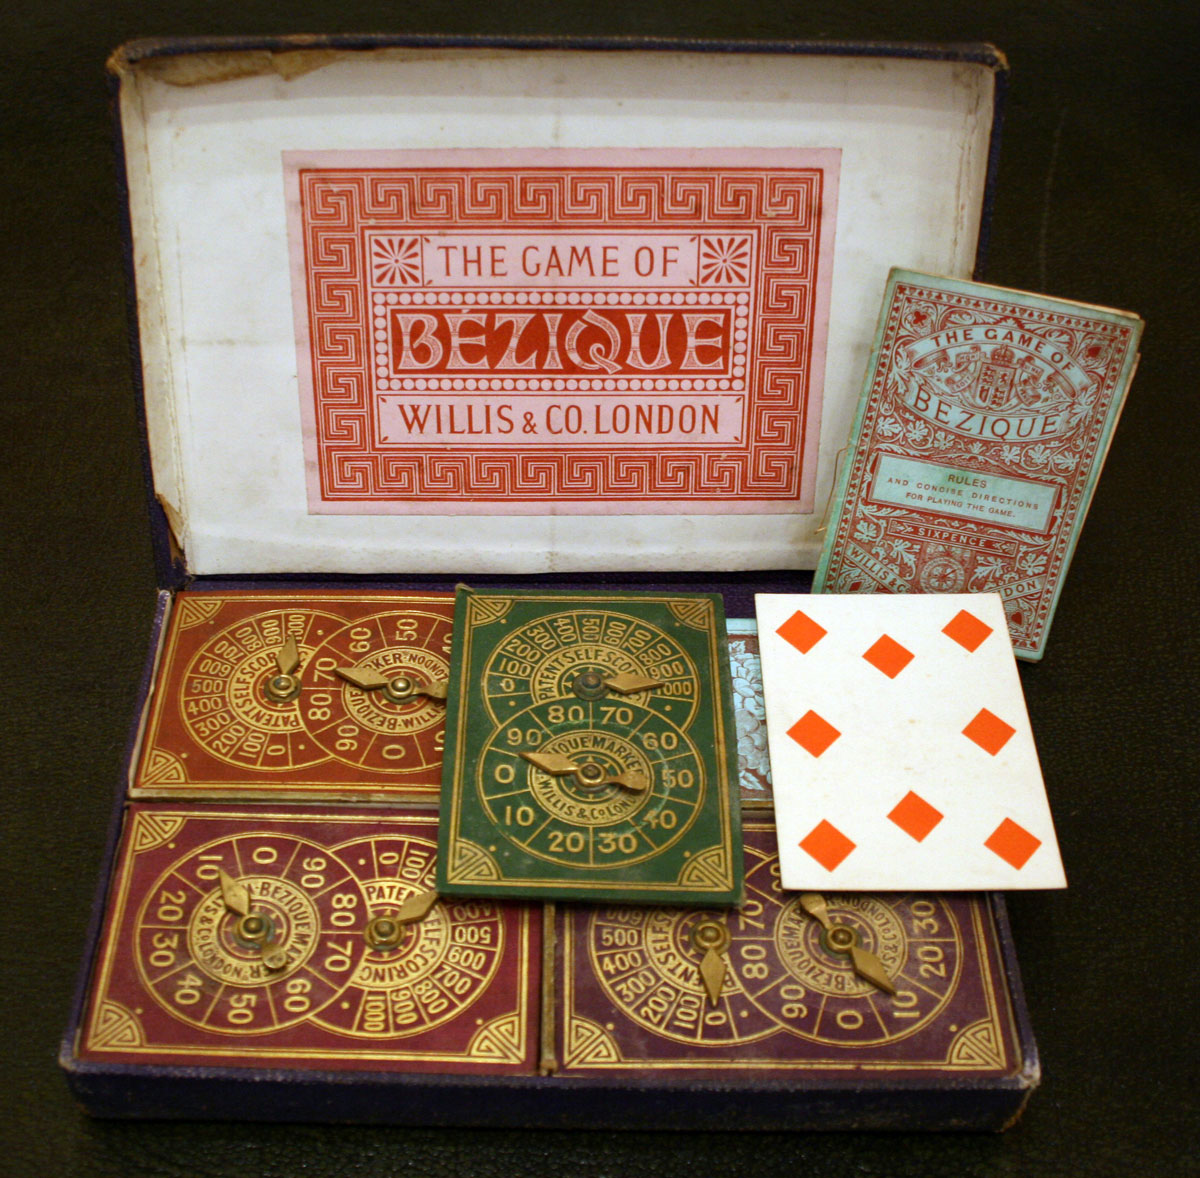 W. H. Willis & Co - The World of Playing Cards